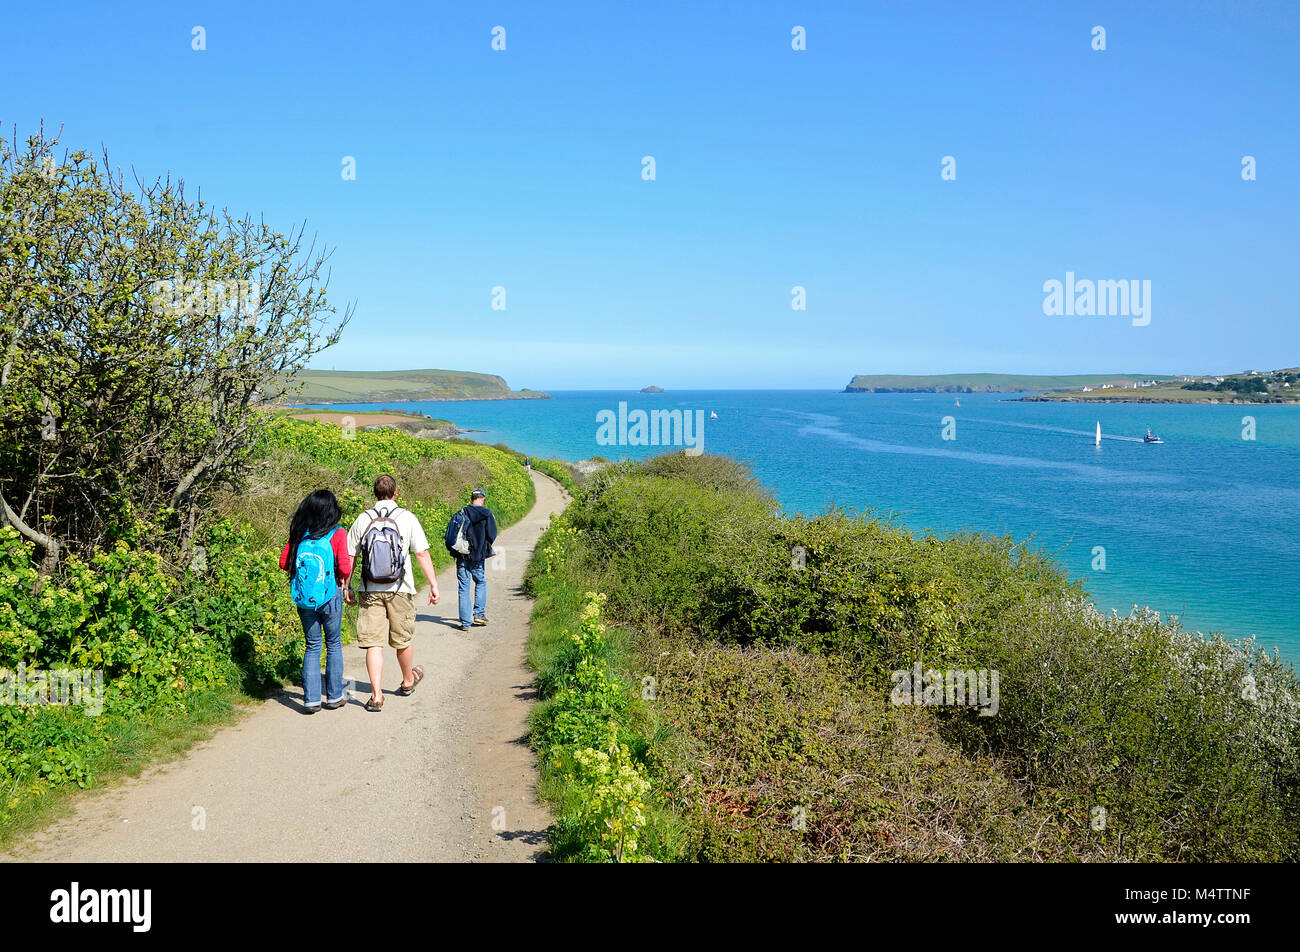 people walking the southwest coast path near padstow in cornwall, england, britain, uk. - Stock Image